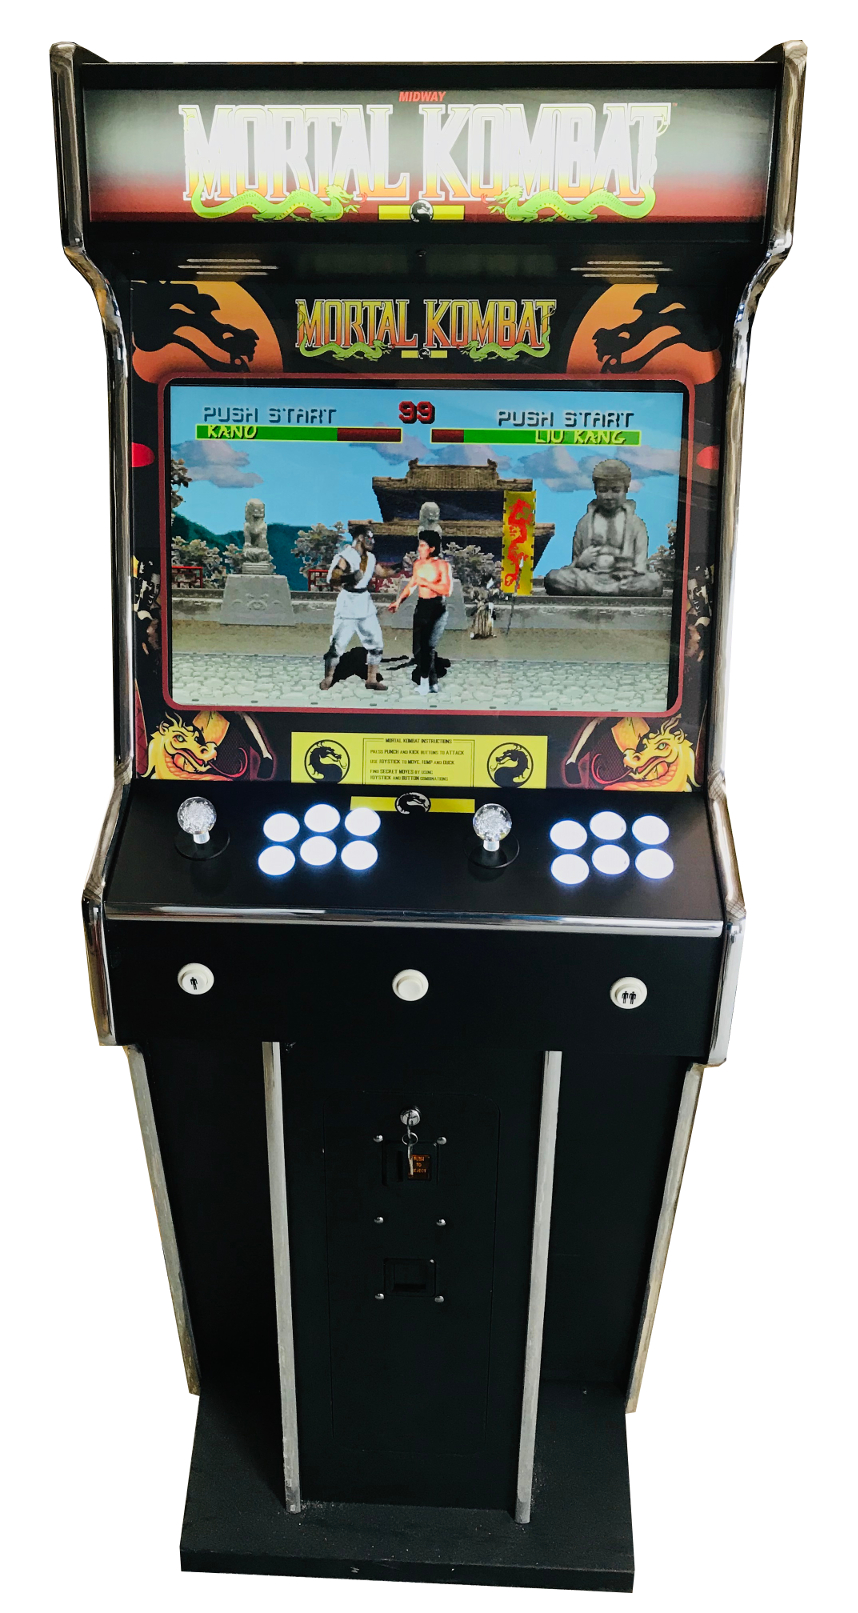 Mortal Kombat (Widescreen)